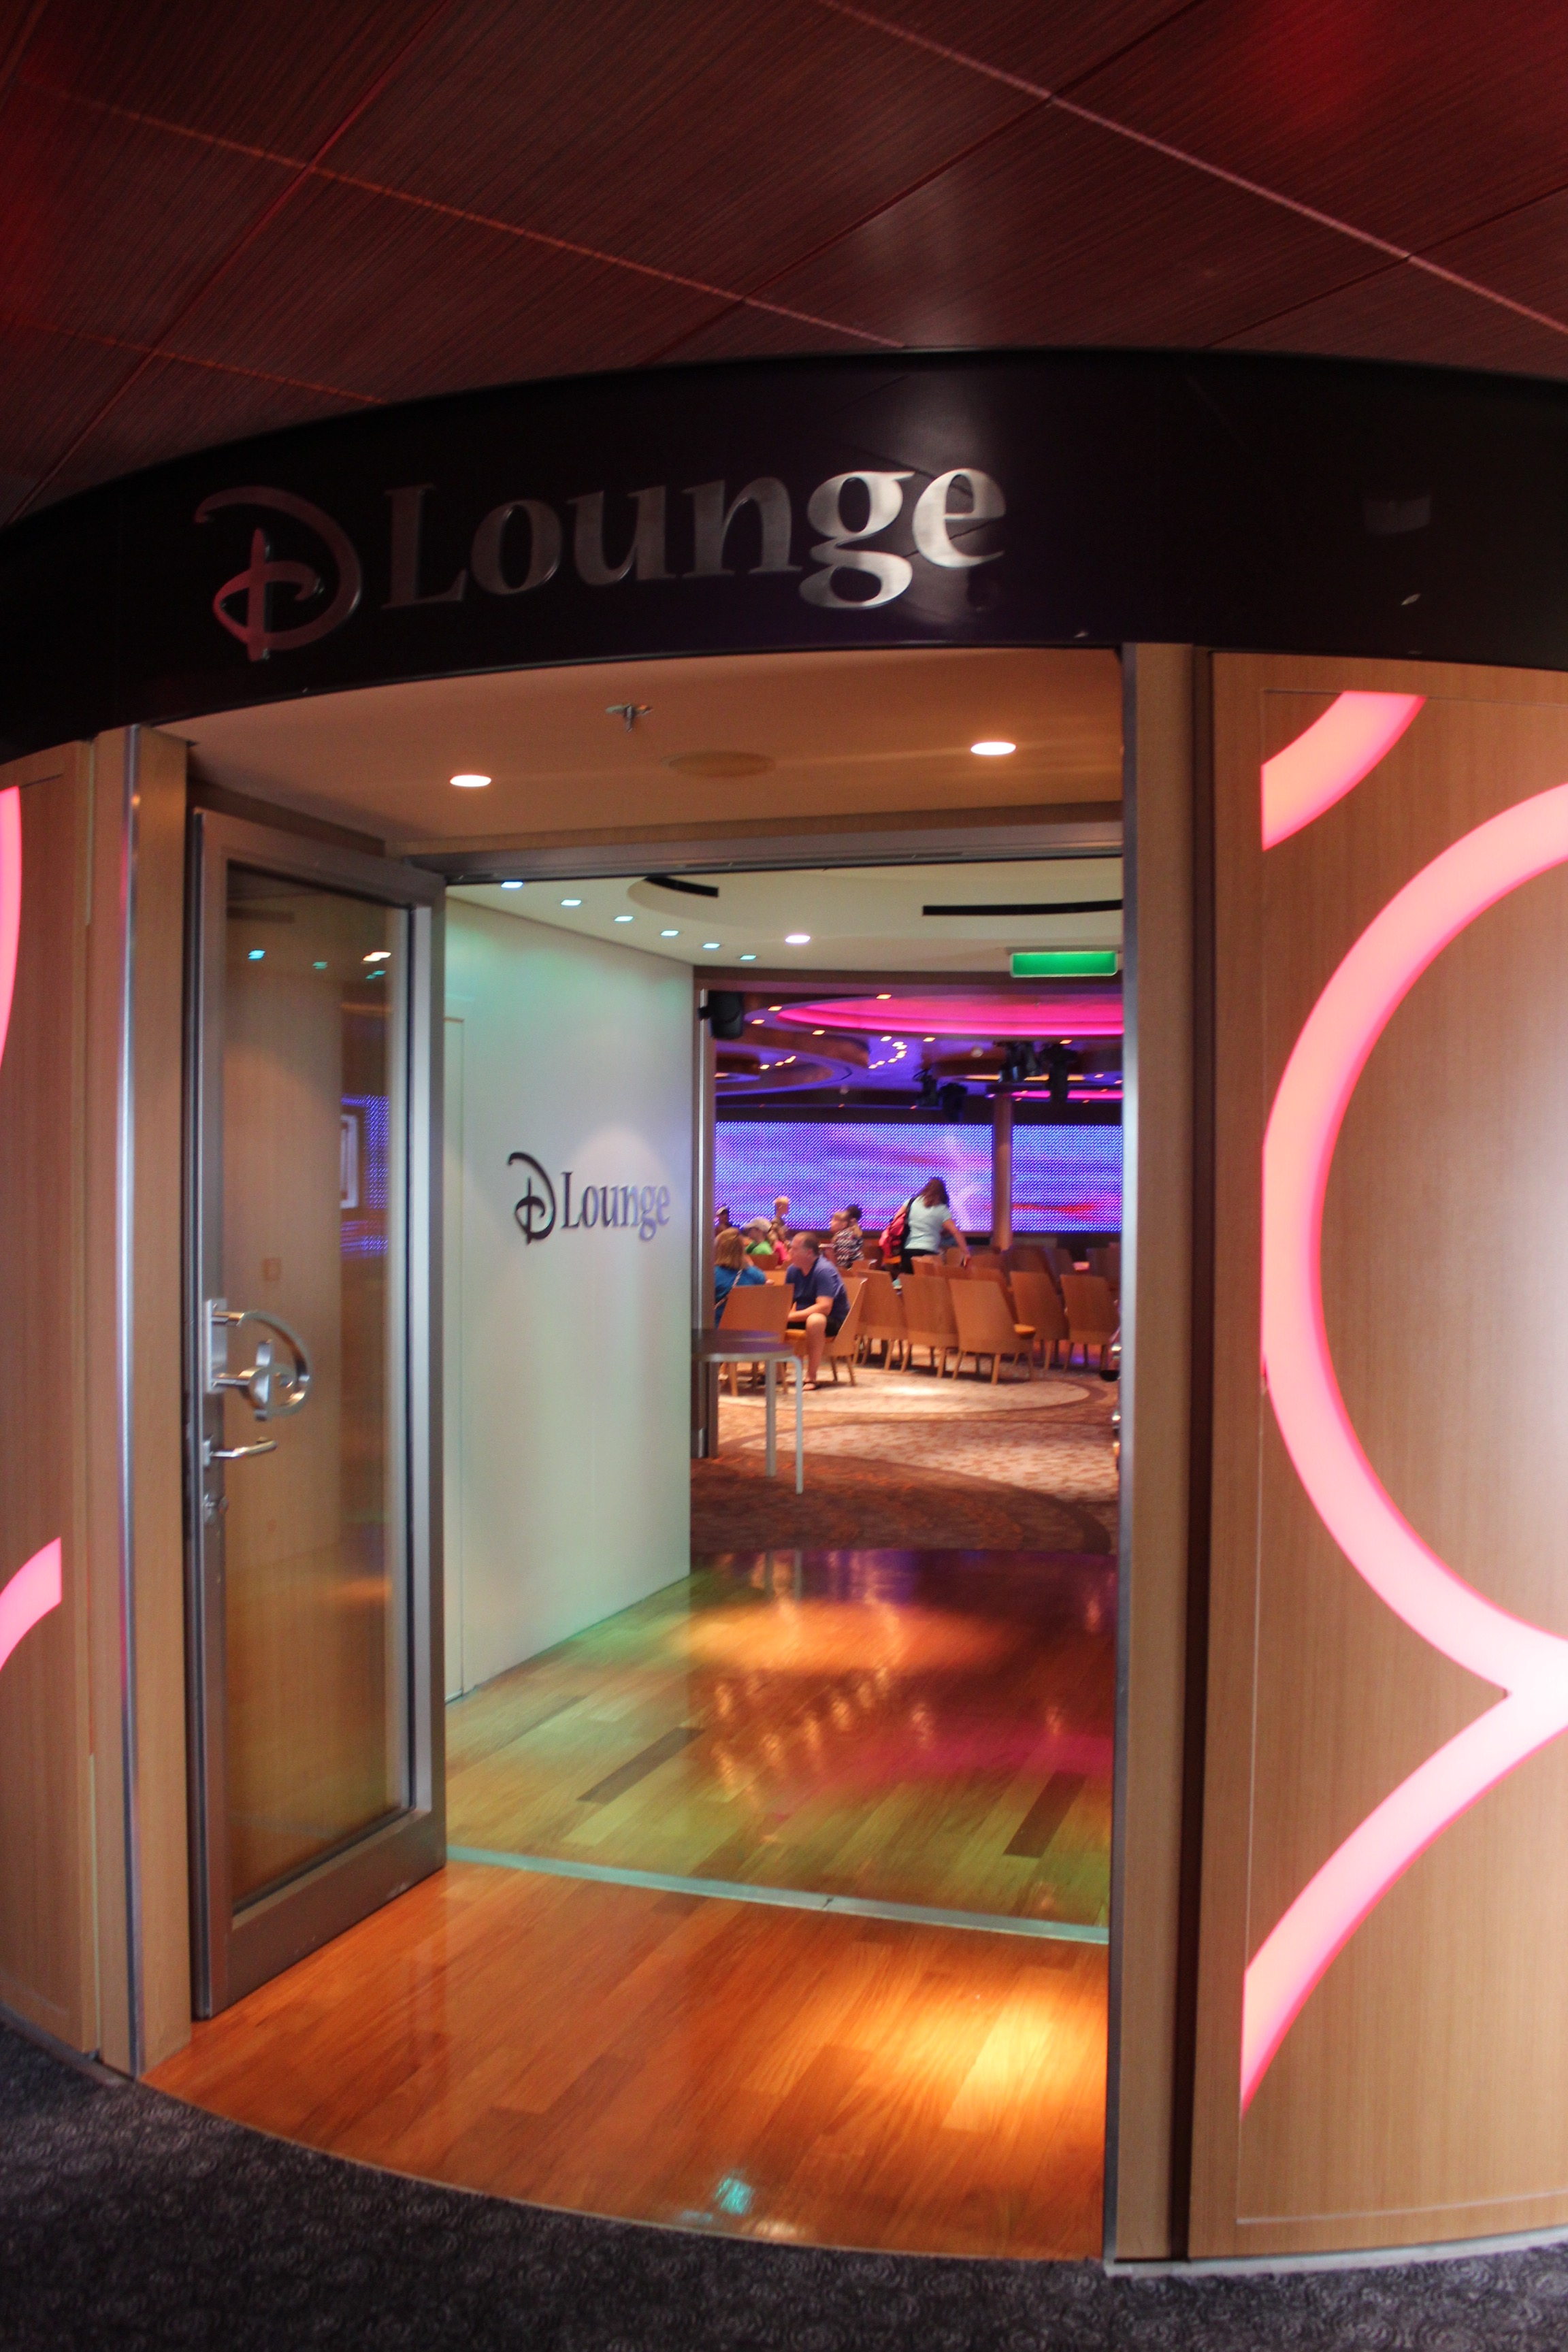 The D Lounge is a venue onboard that hosts events throughout the day and night that the entire family can enjoy together.